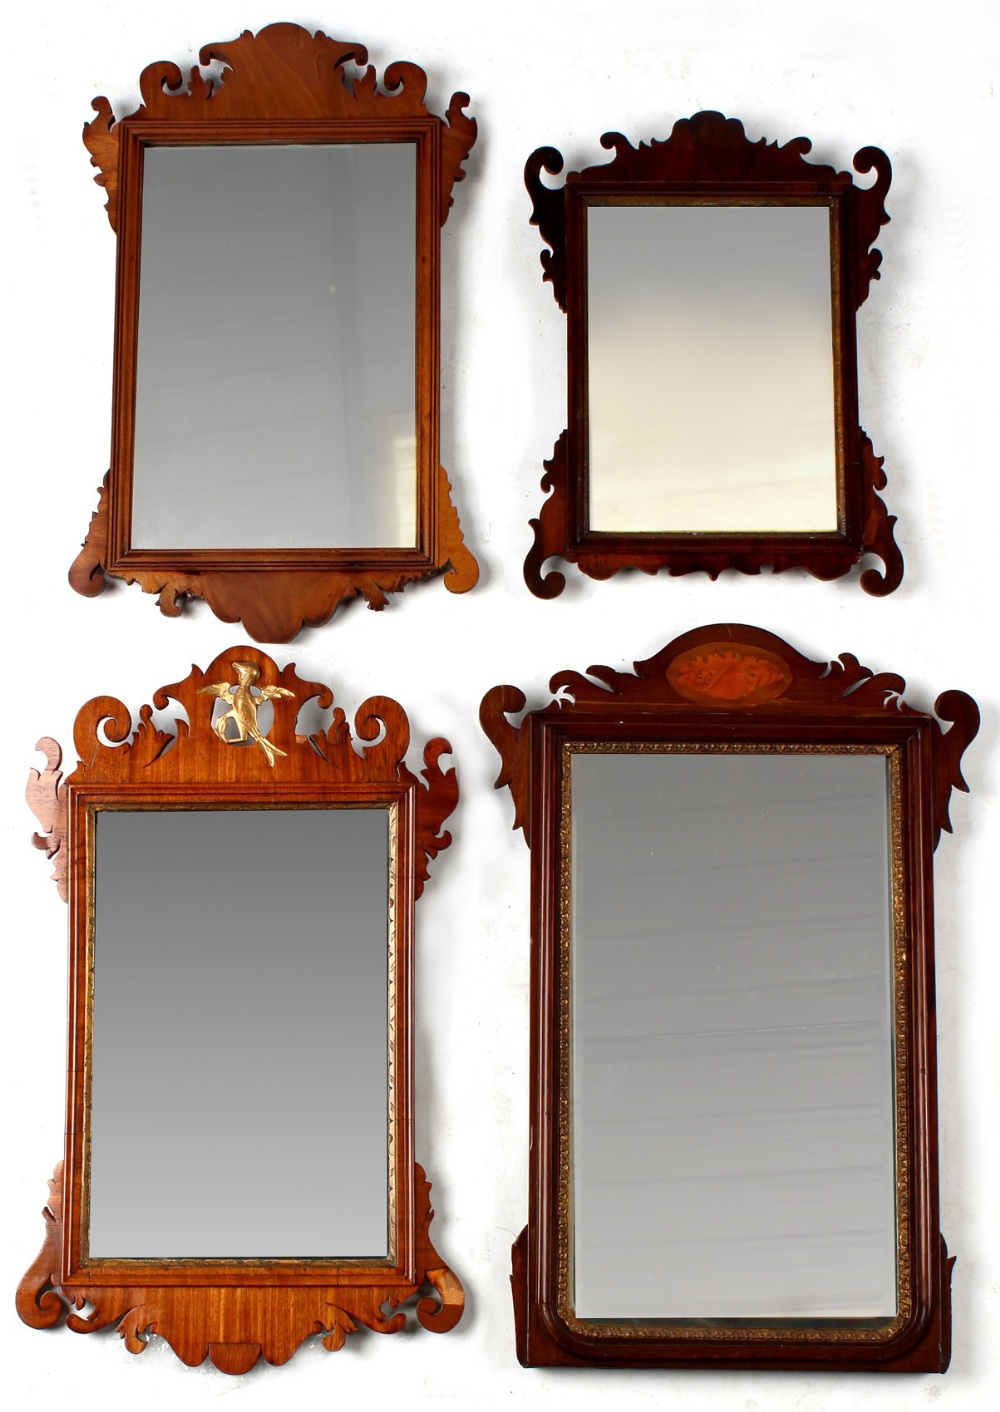 Property of a deceased estate - four 18th century & later mahogany fretwork framed wall mirrors, the